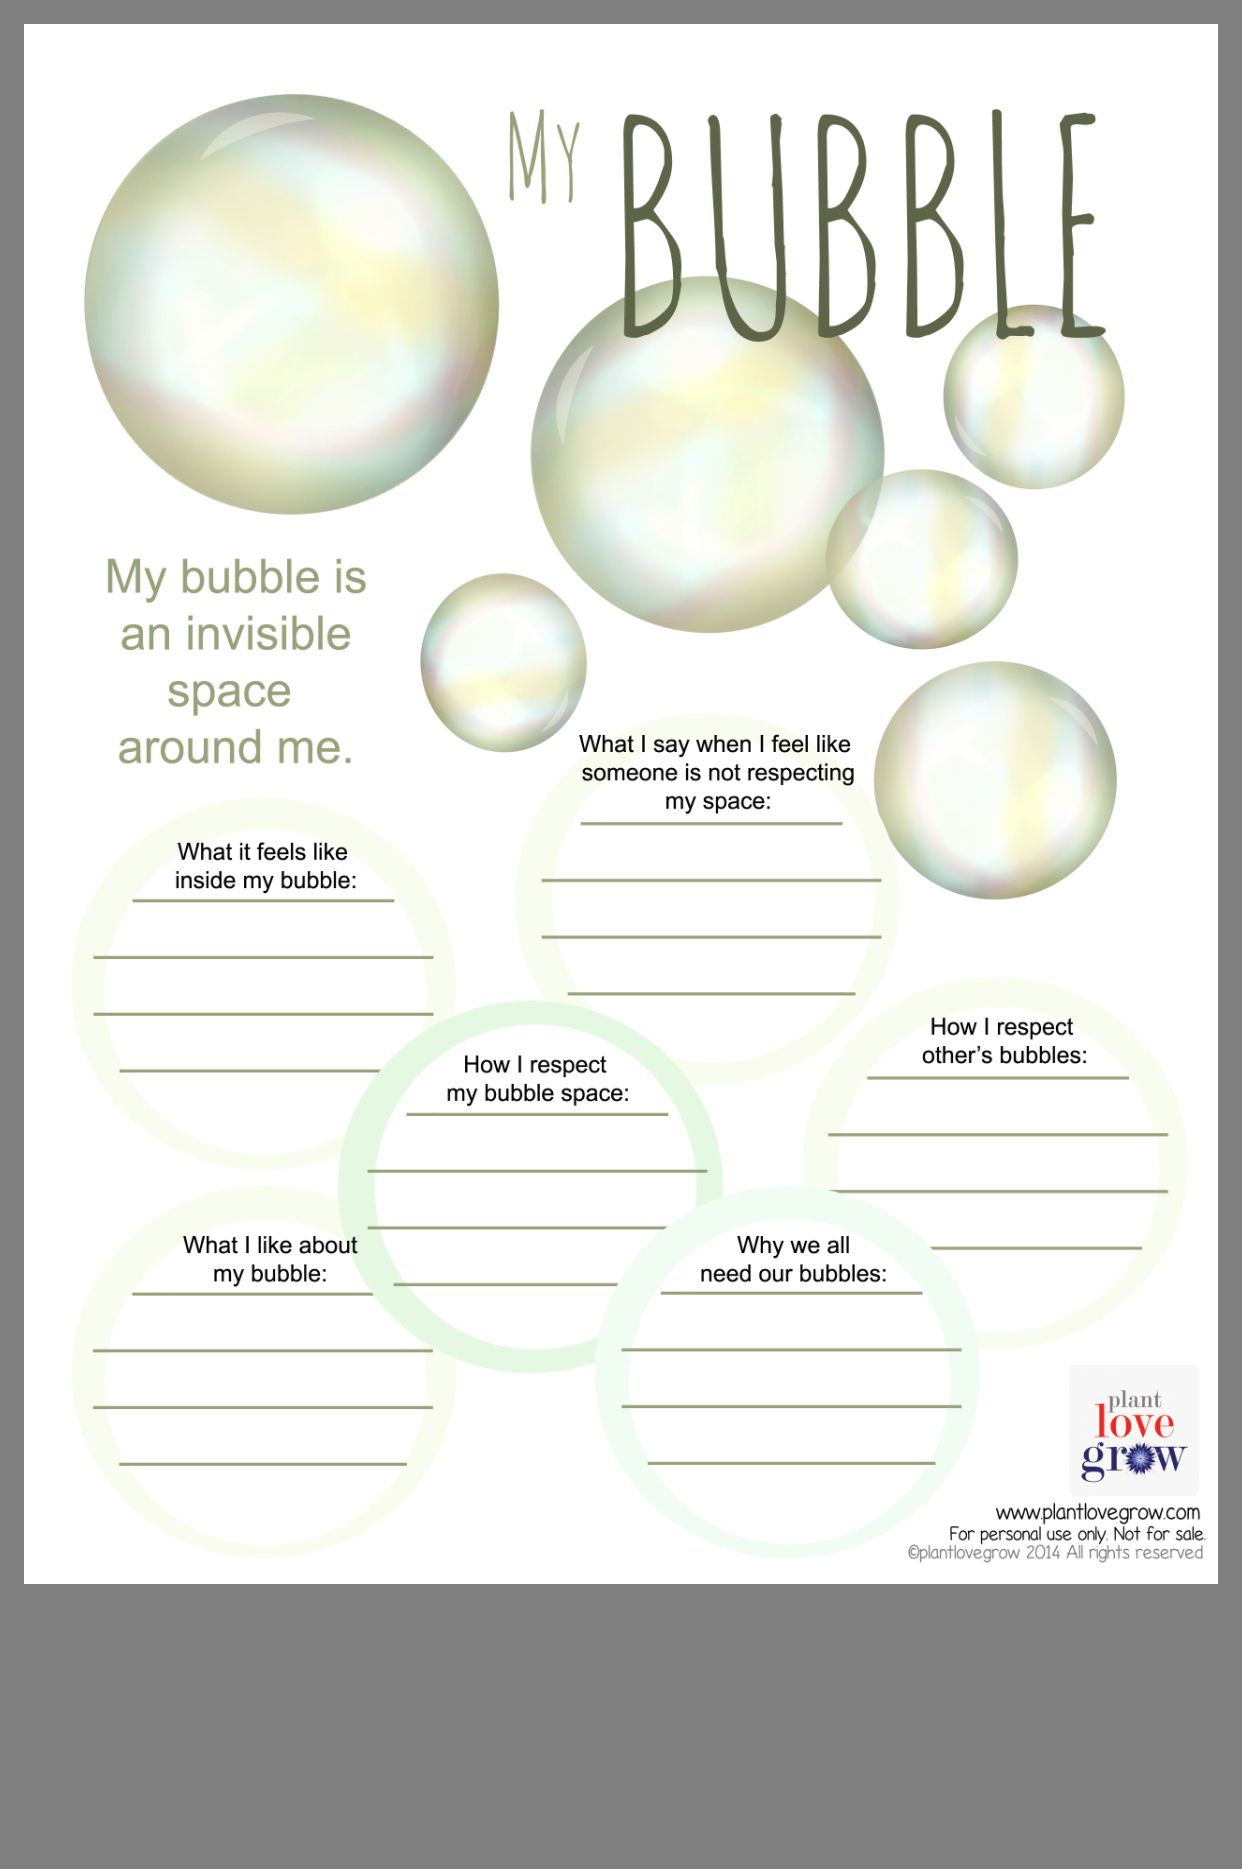 My Bubble Template From Plantlovegrow